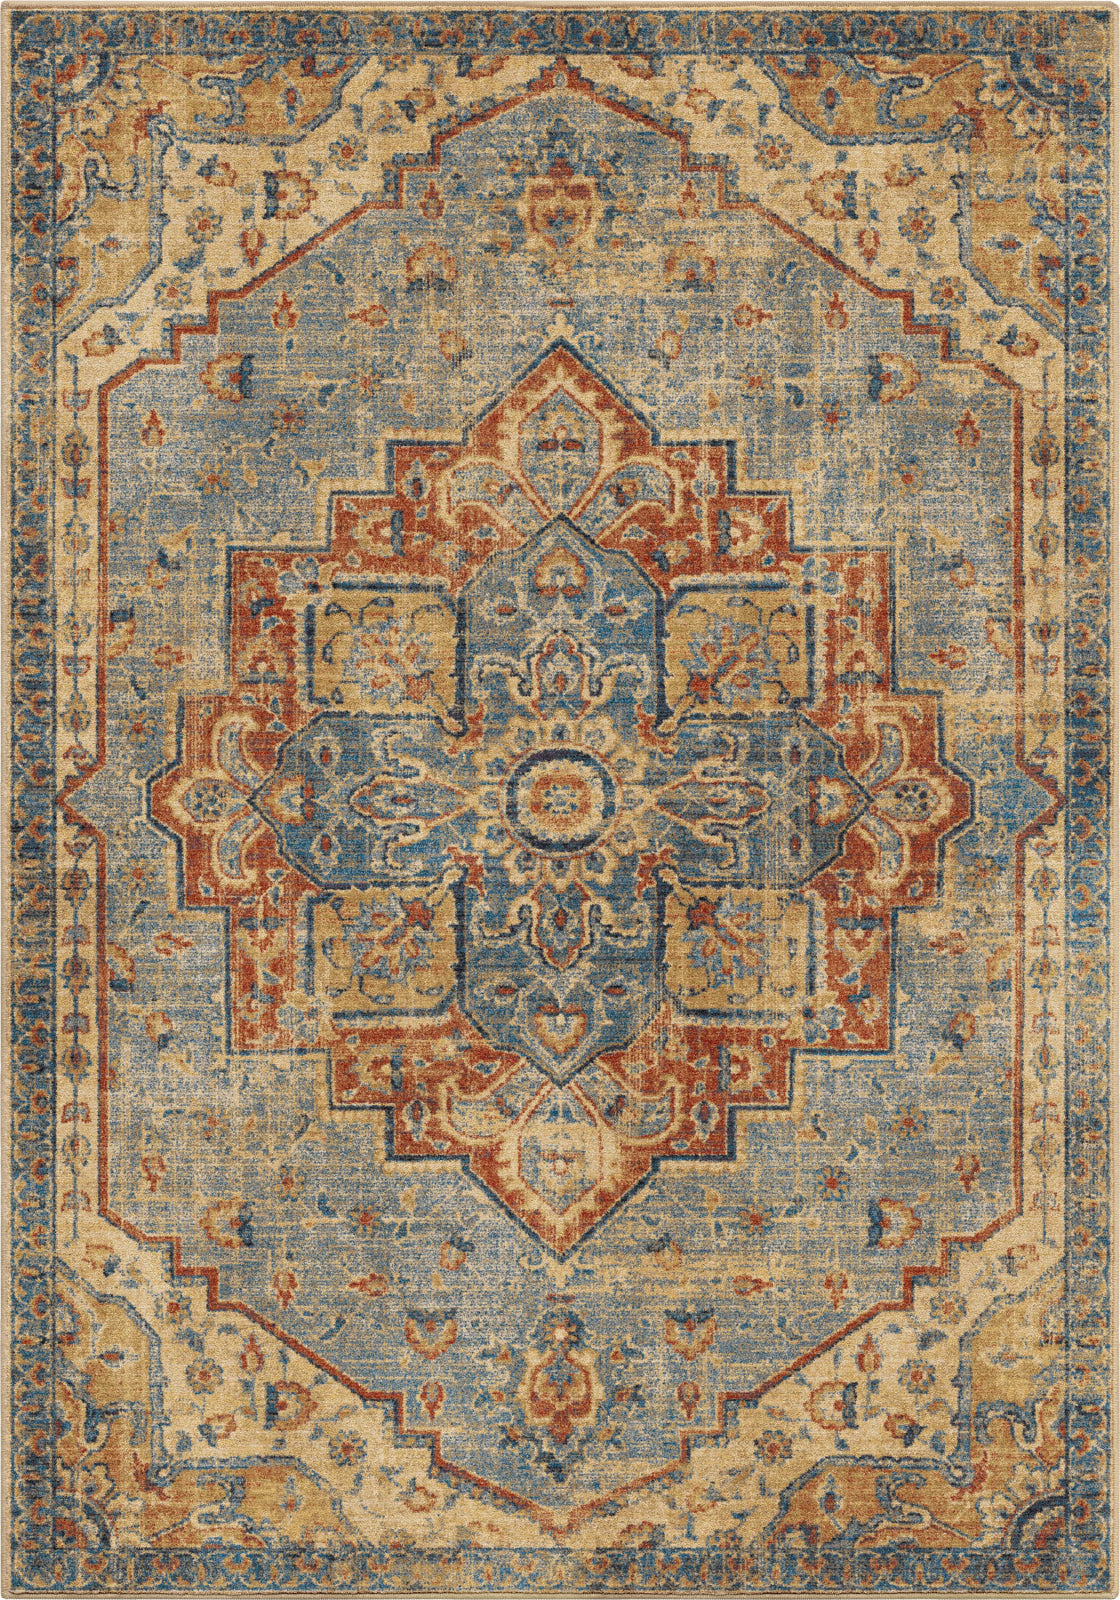 Orian Rugs Alexandria King Fisher Pale Blue Area Rug by Palmetto Living main image